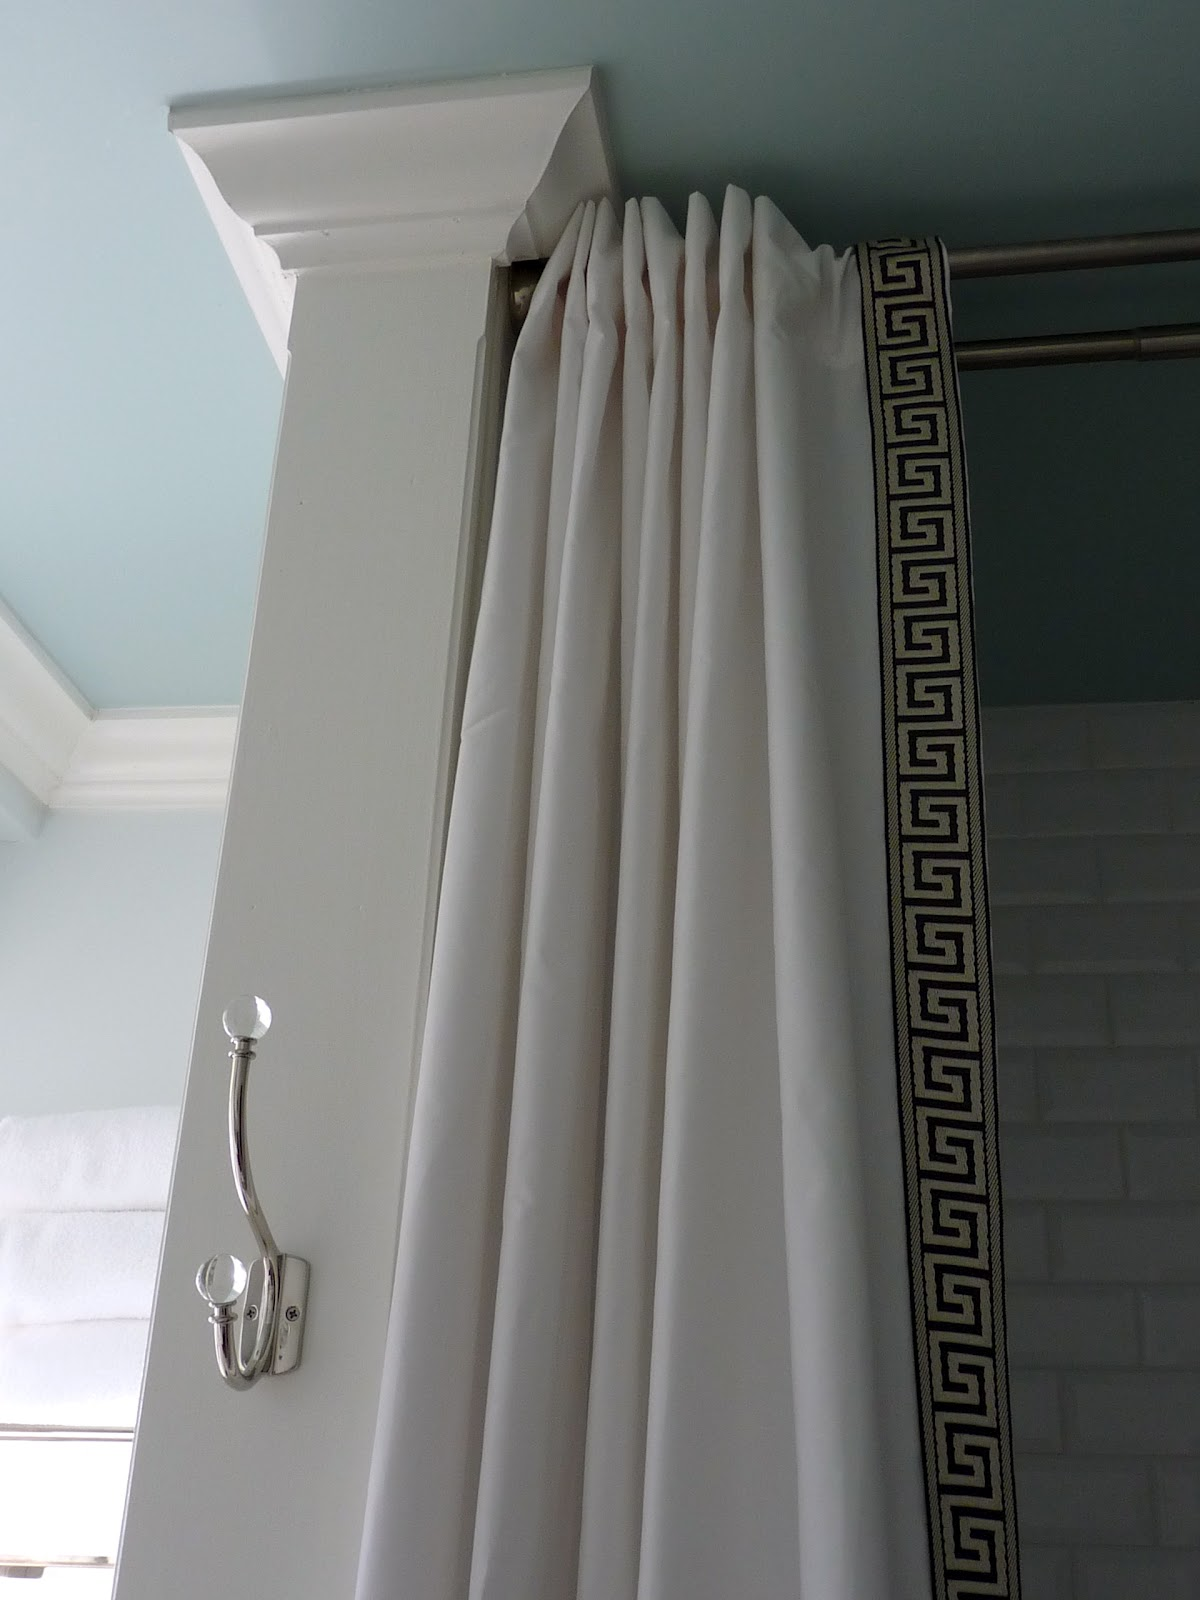 Hazardous Design: Shower Curtain, DIY Style